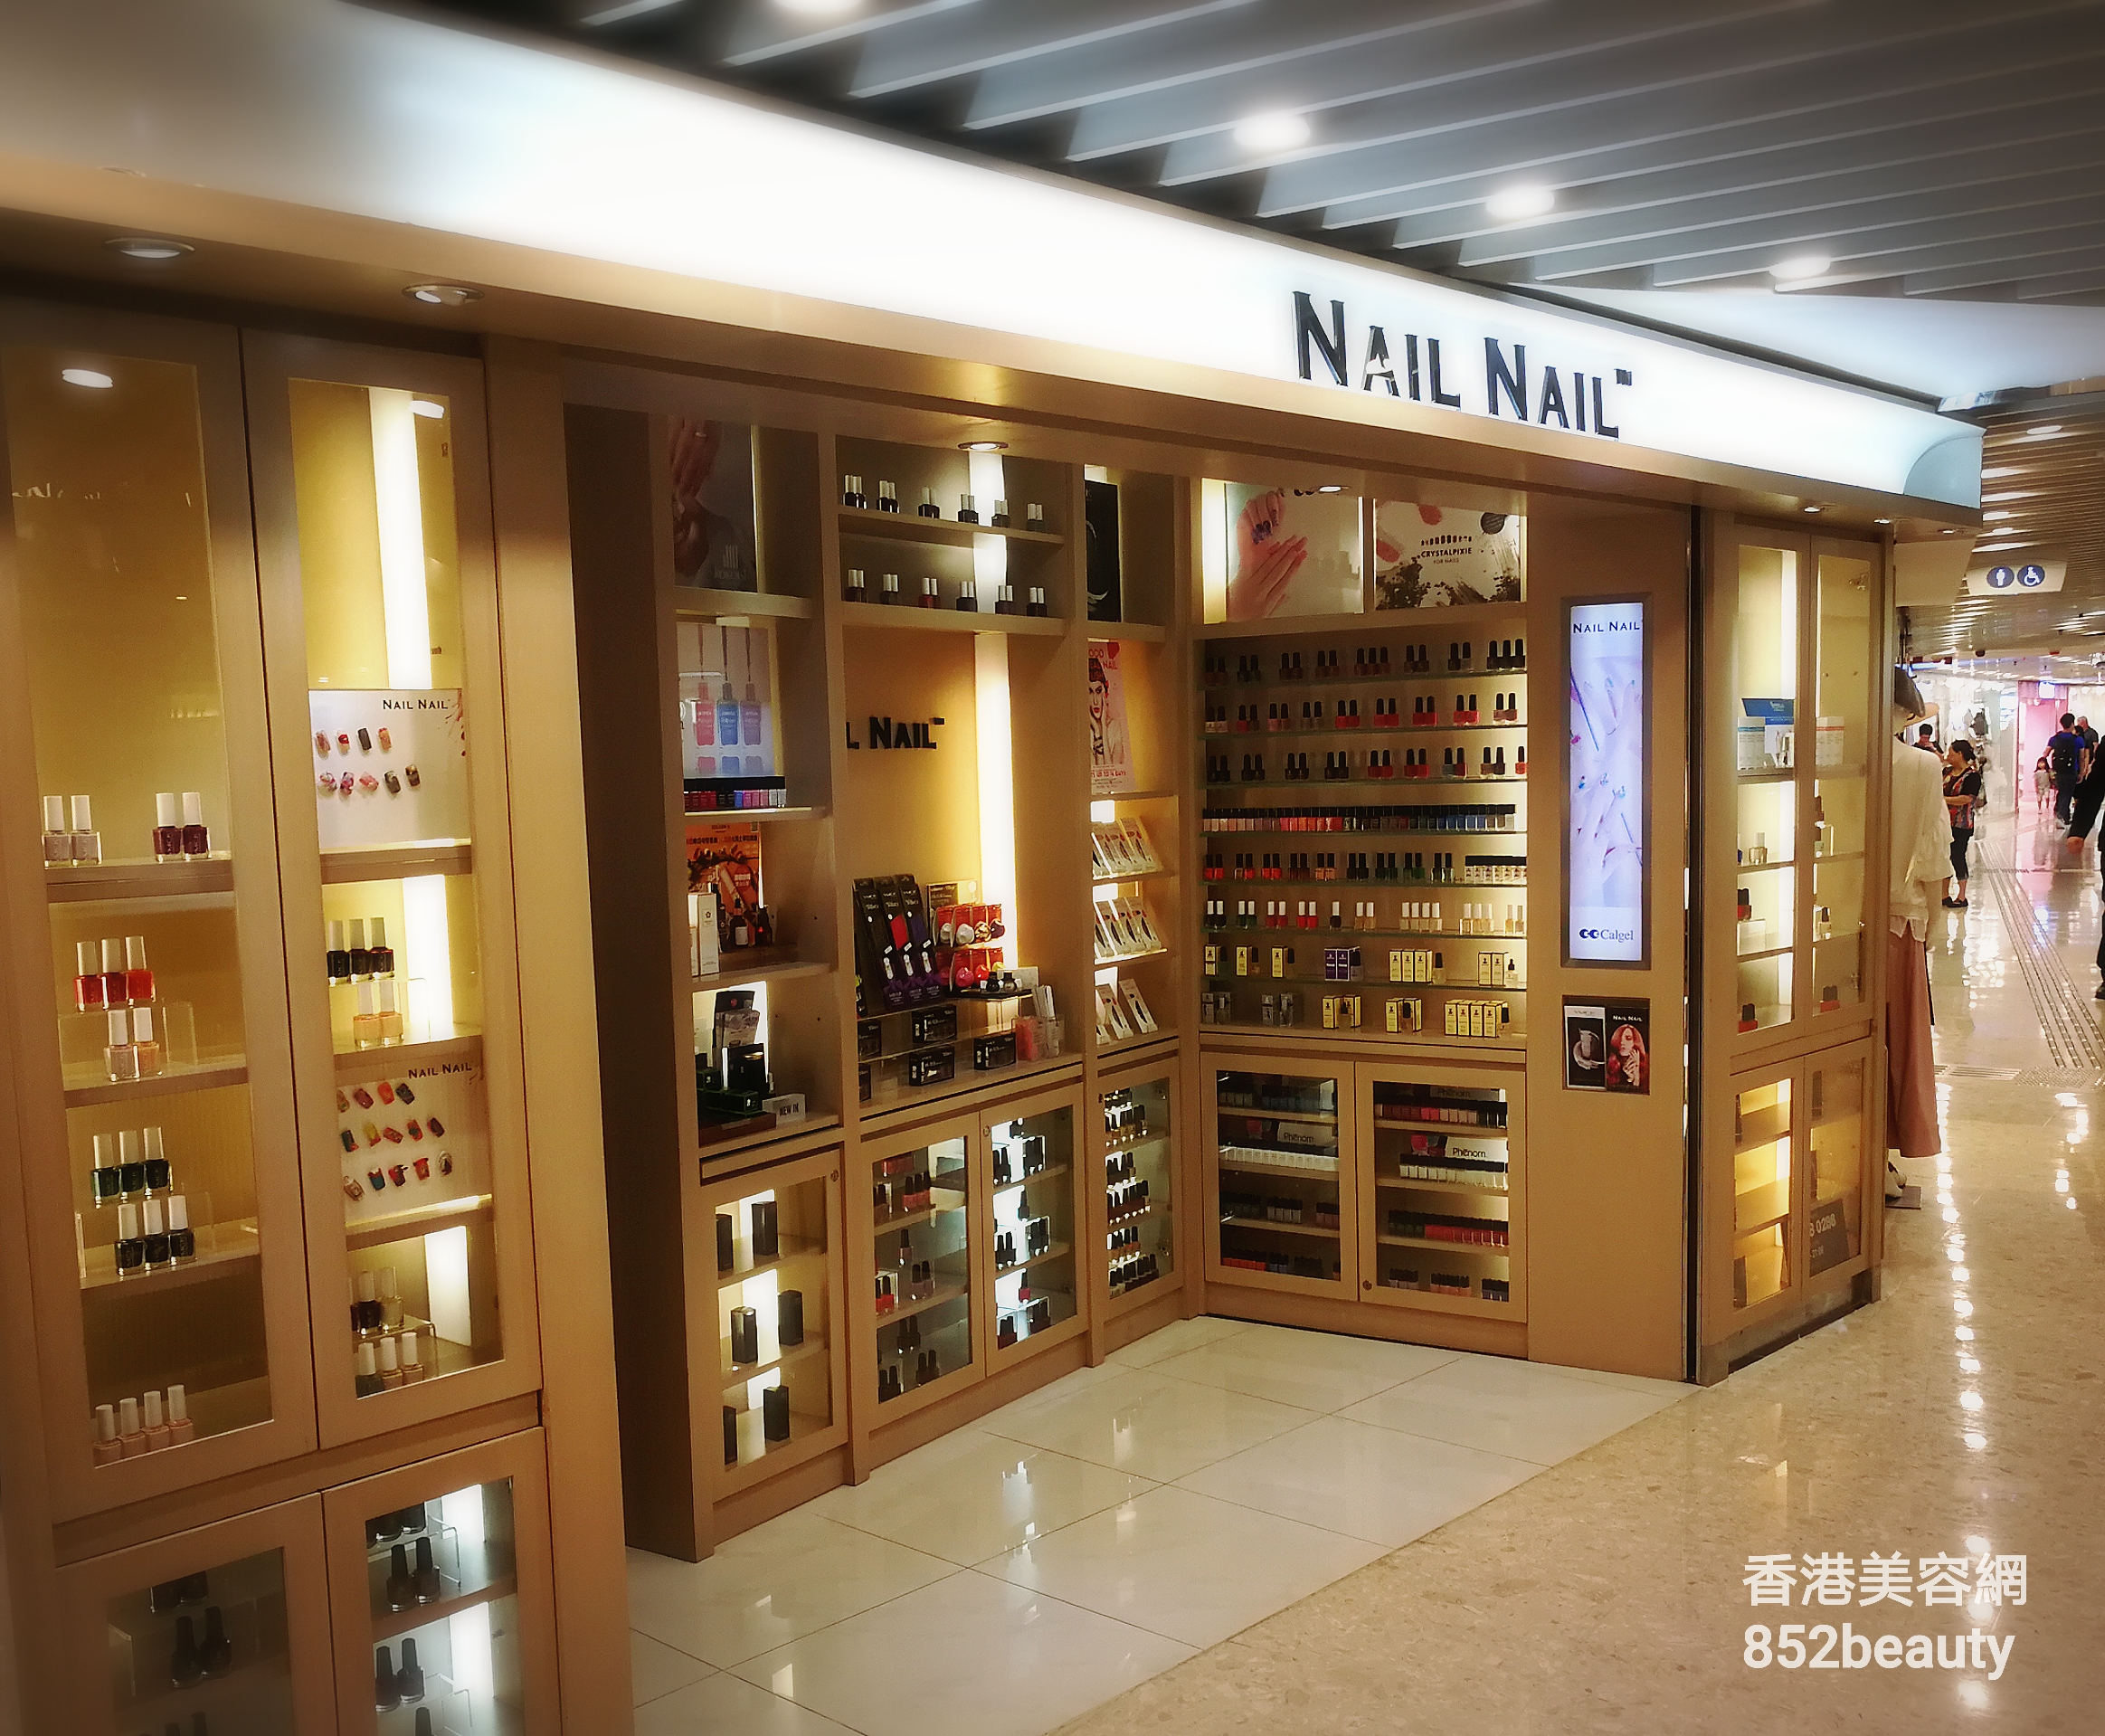 美容院 Beauty Salon 集團Nail Nail (Four Seasons Hotel) @ 香港美容網 HK Beauty Salon